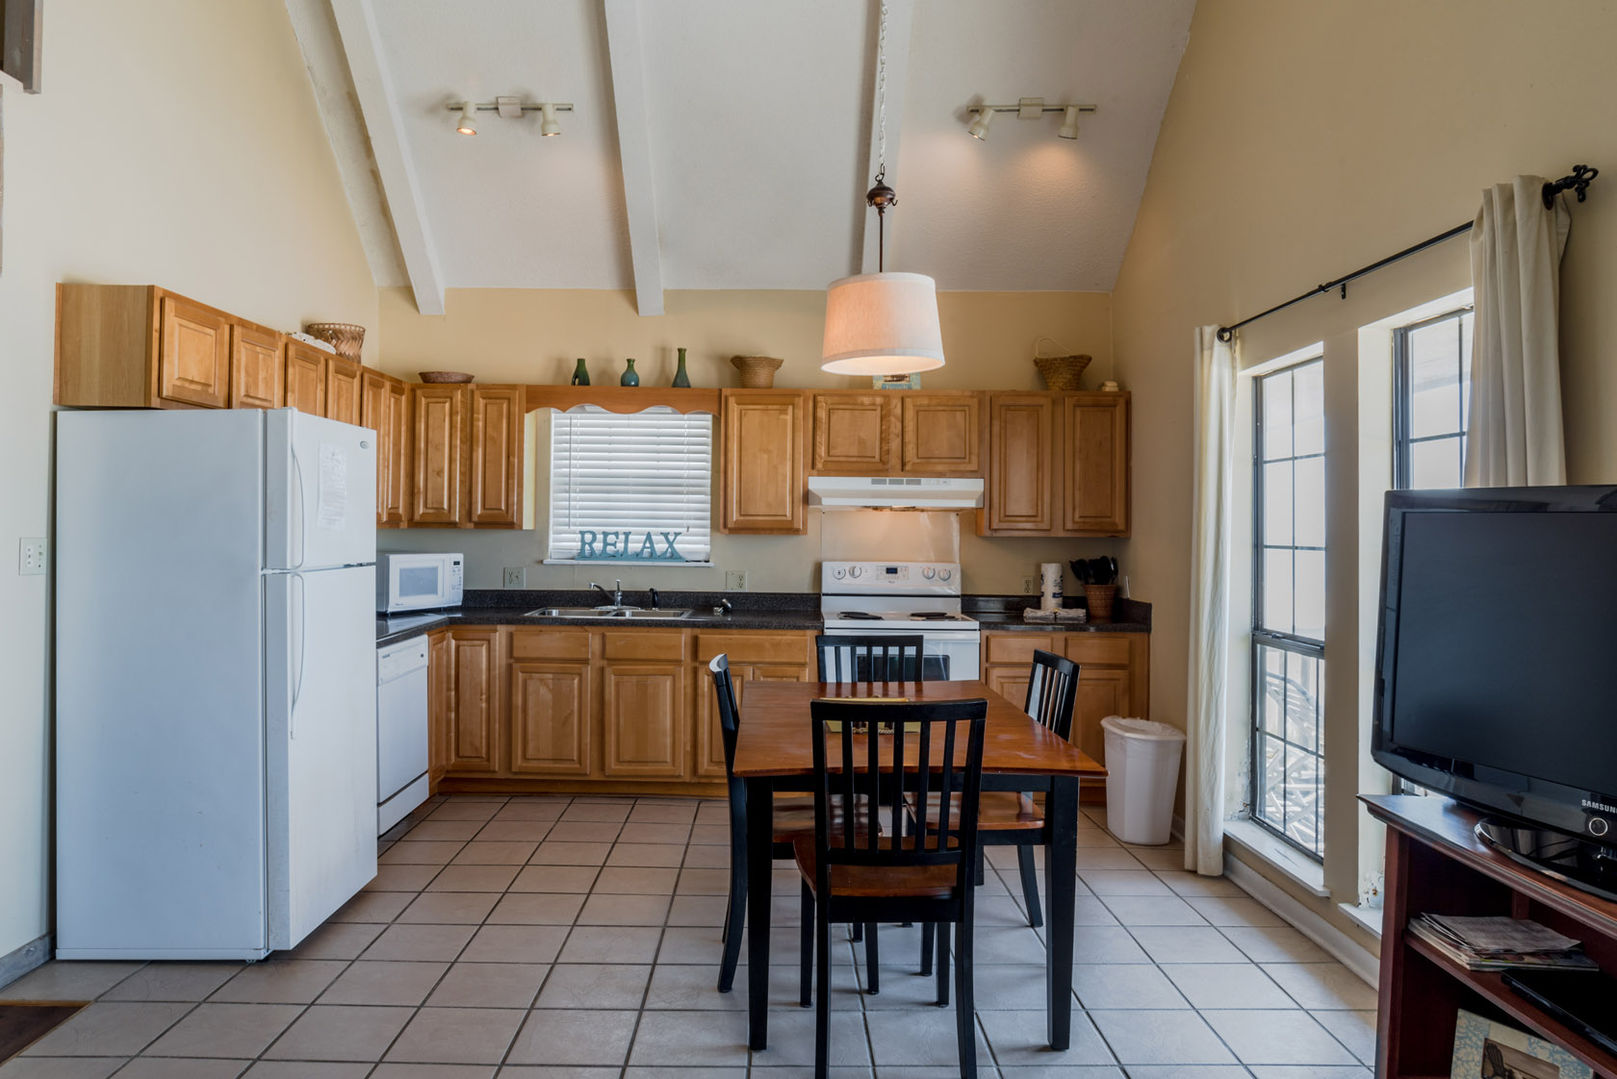 The Kitchen Is Open To The Dining Area, and complete with modern appliances and seating.